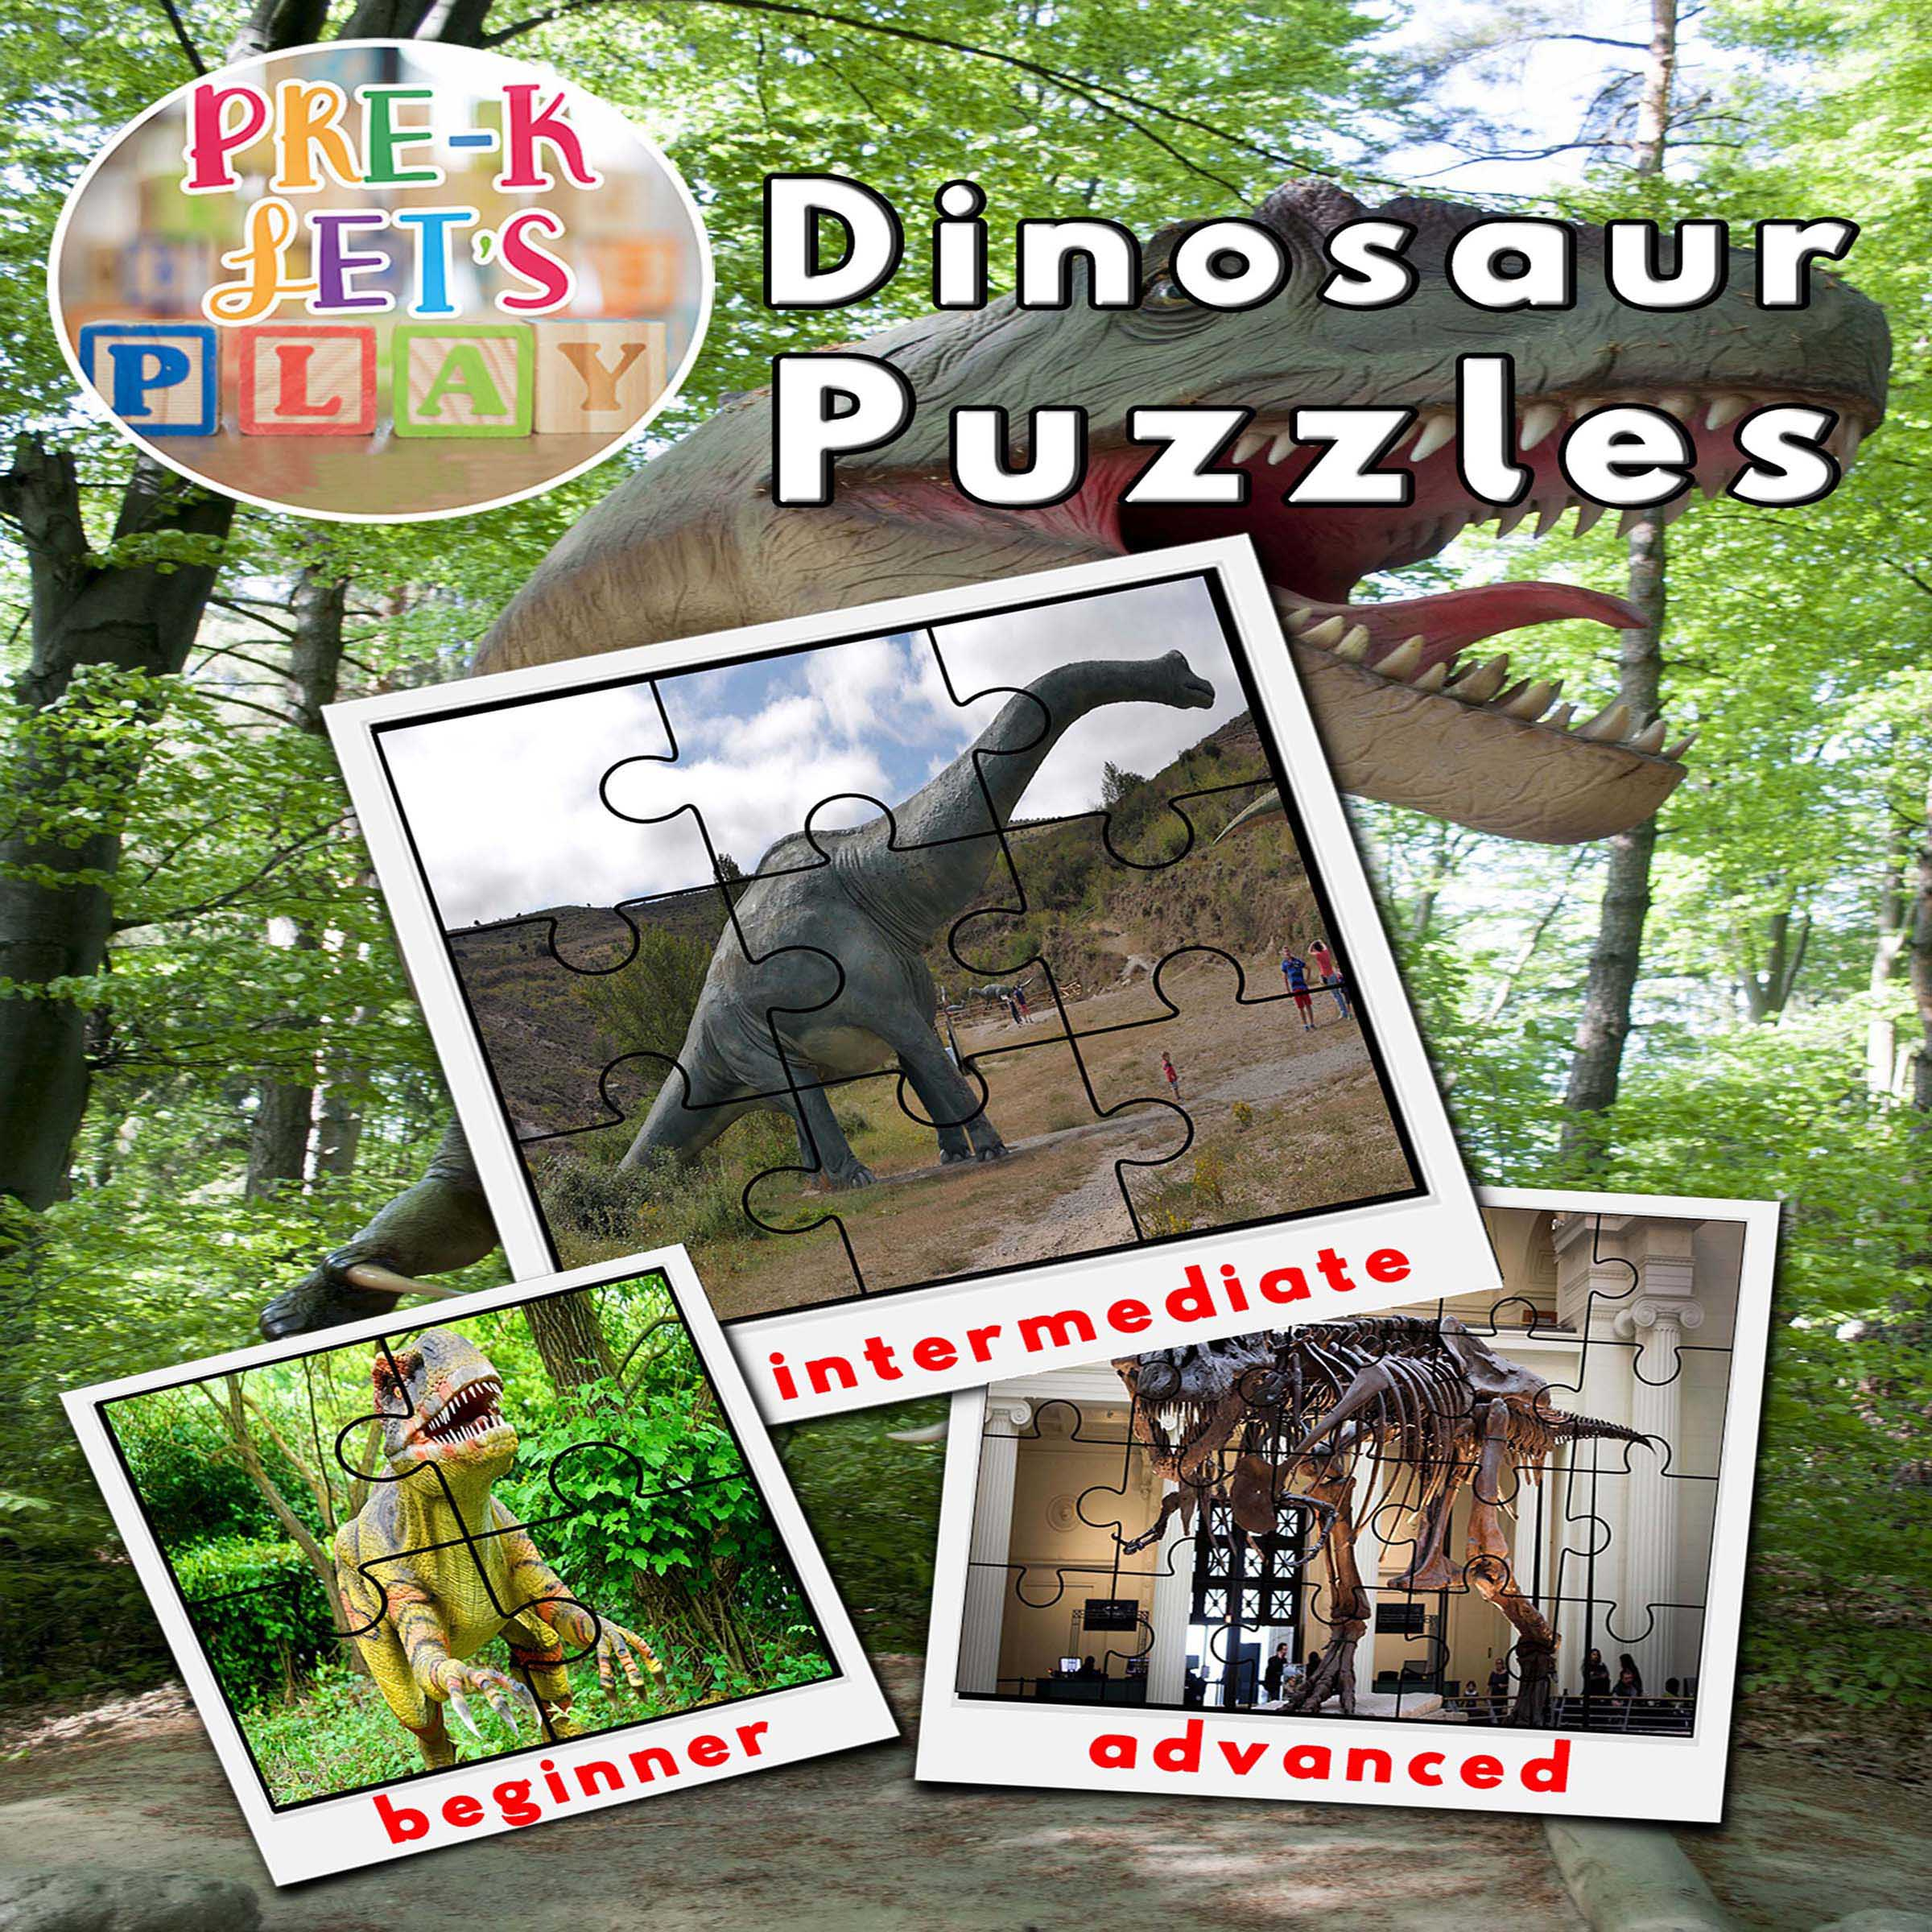 Dinosaur preschool activities. Cover of printable picture puzzles for preschoolers to practice improving their fine motor skills.